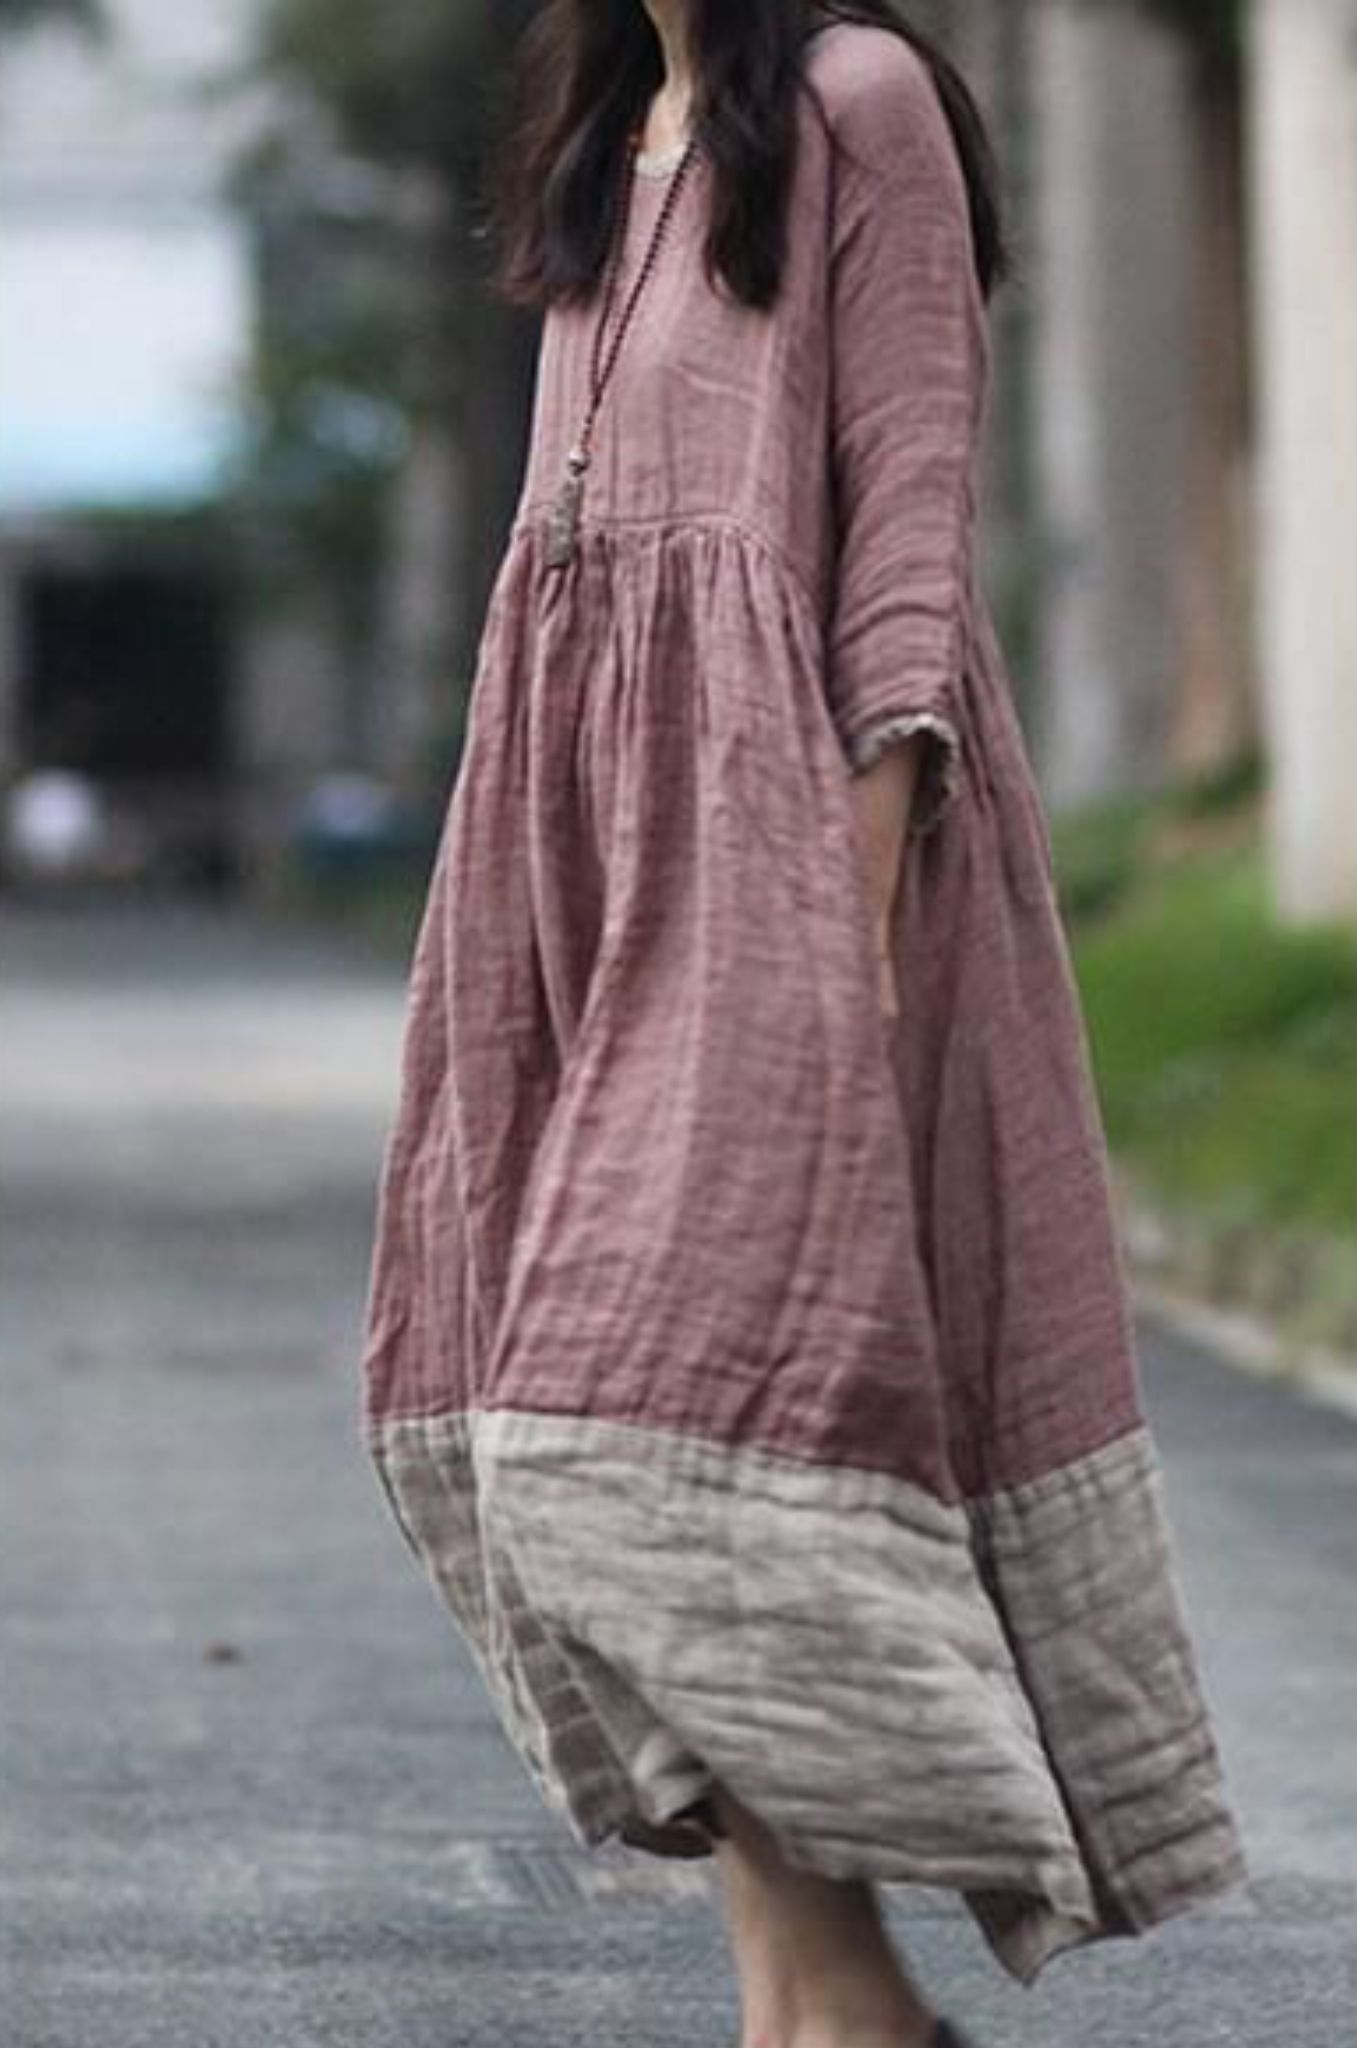 Pin by elida manzo on viole pinterest linens linen dresses and